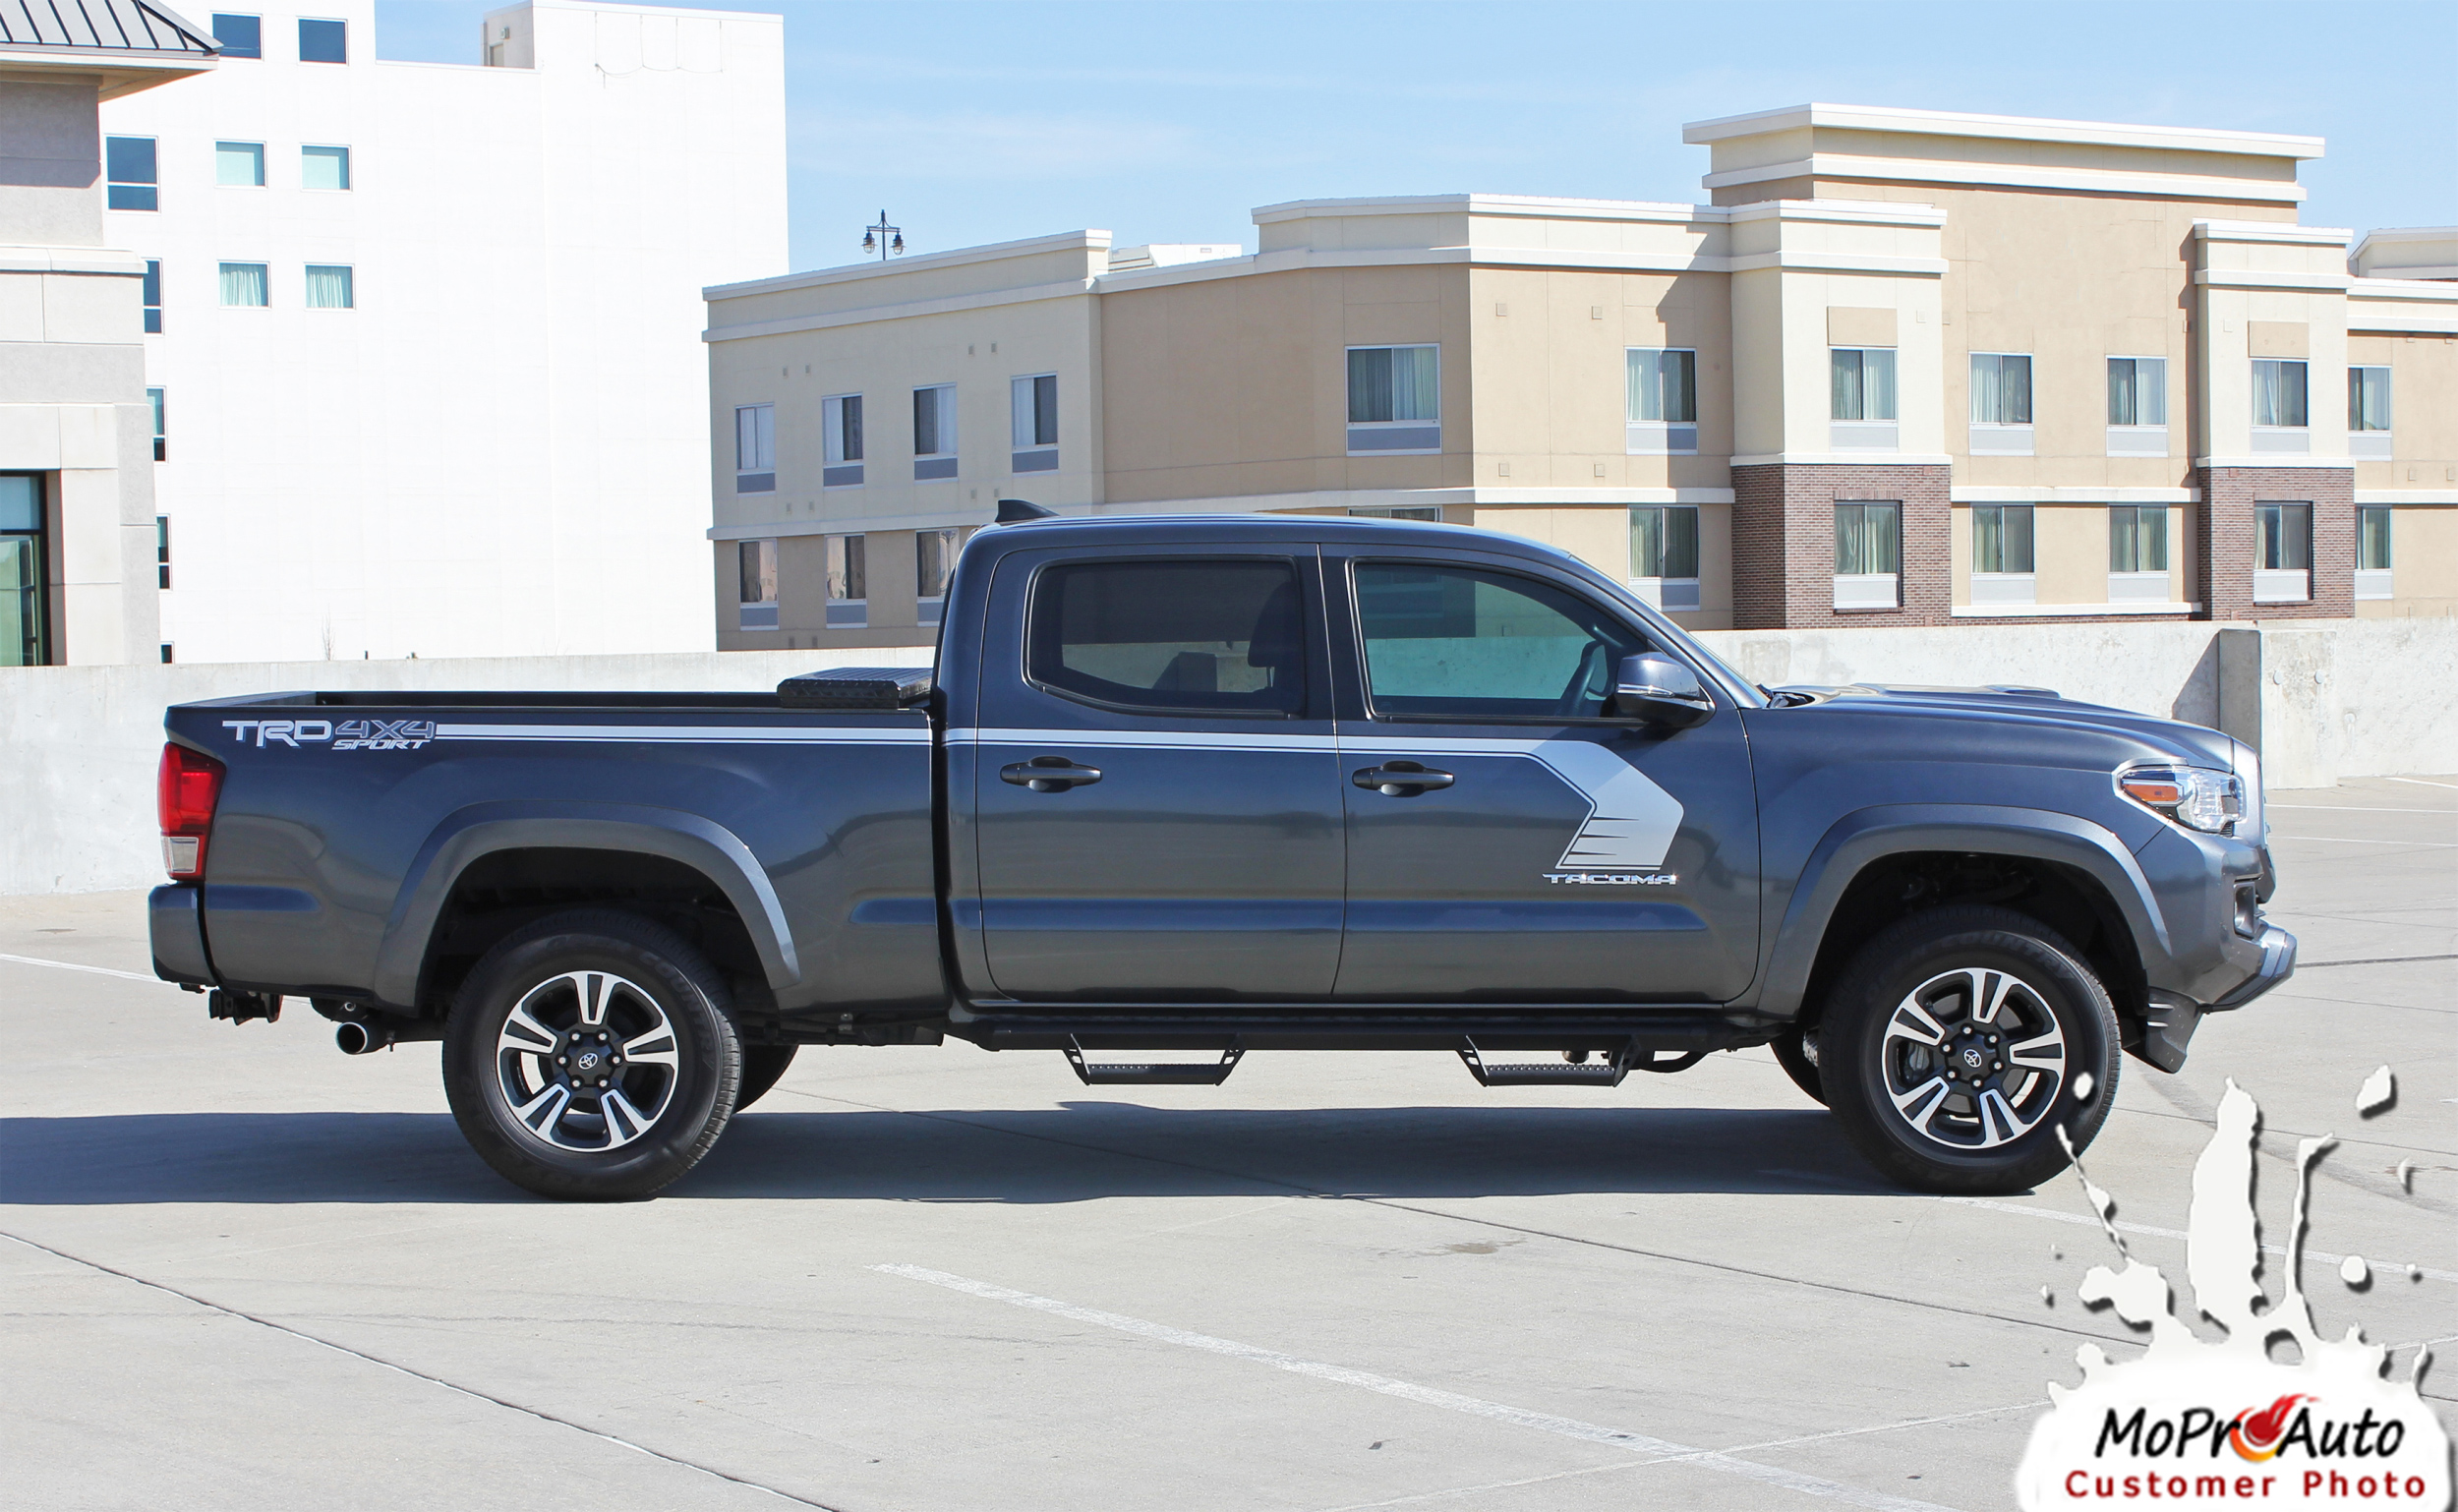 STORM - Toyota Tacoma Truck TRD Sport Pro 3M 1080 Vinyl Graphics, Stripes and Decals Package by MoProAuto Pro Design Series